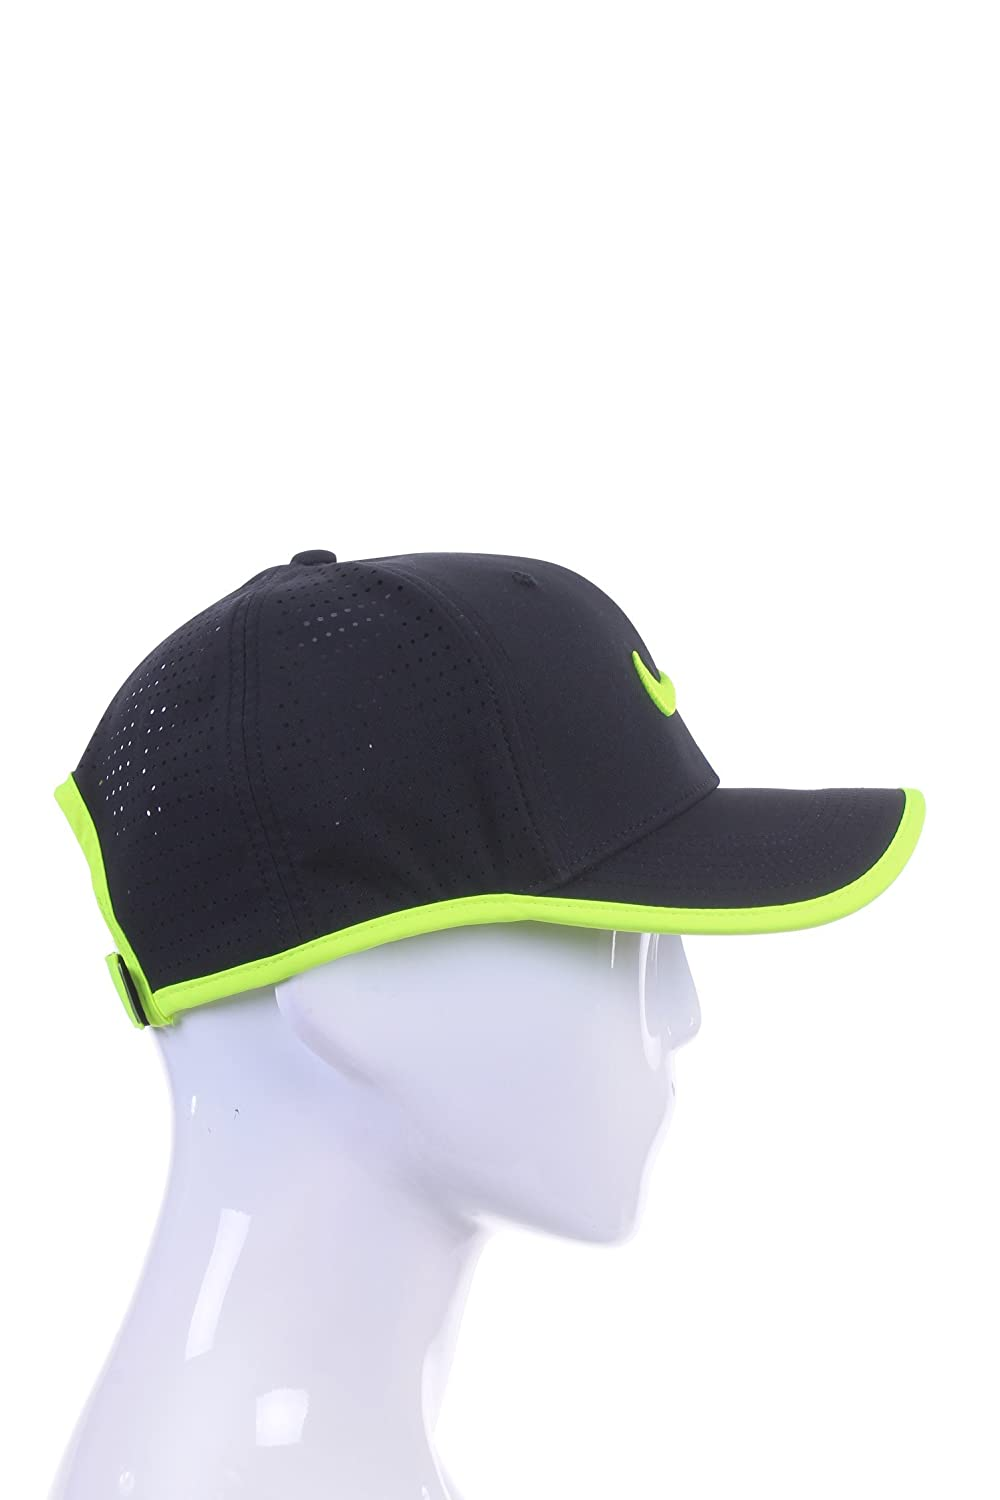 331a384f Amazon.com: NIKE AeroBill Featherlight Cap: Nike: Sports & Outdoors